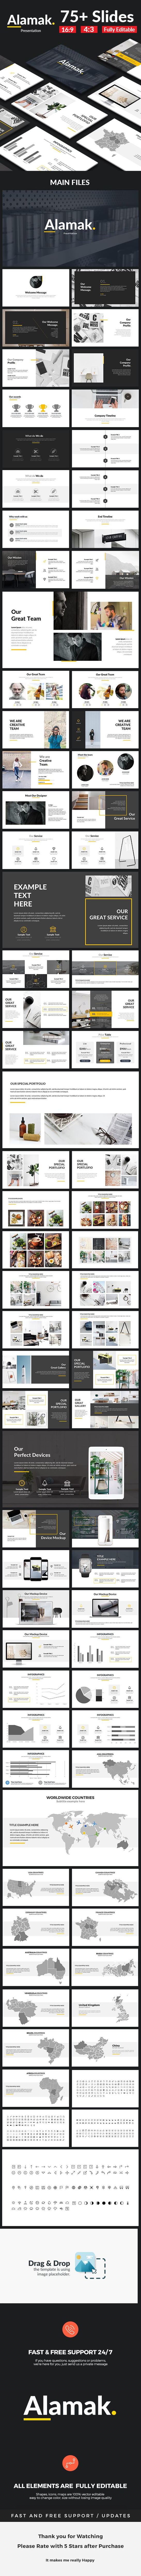 Alamak Powerpoint Template. Download here: http://graphicriver.net/item/alamak-powerpoint-template/16771766?ref=ksioks